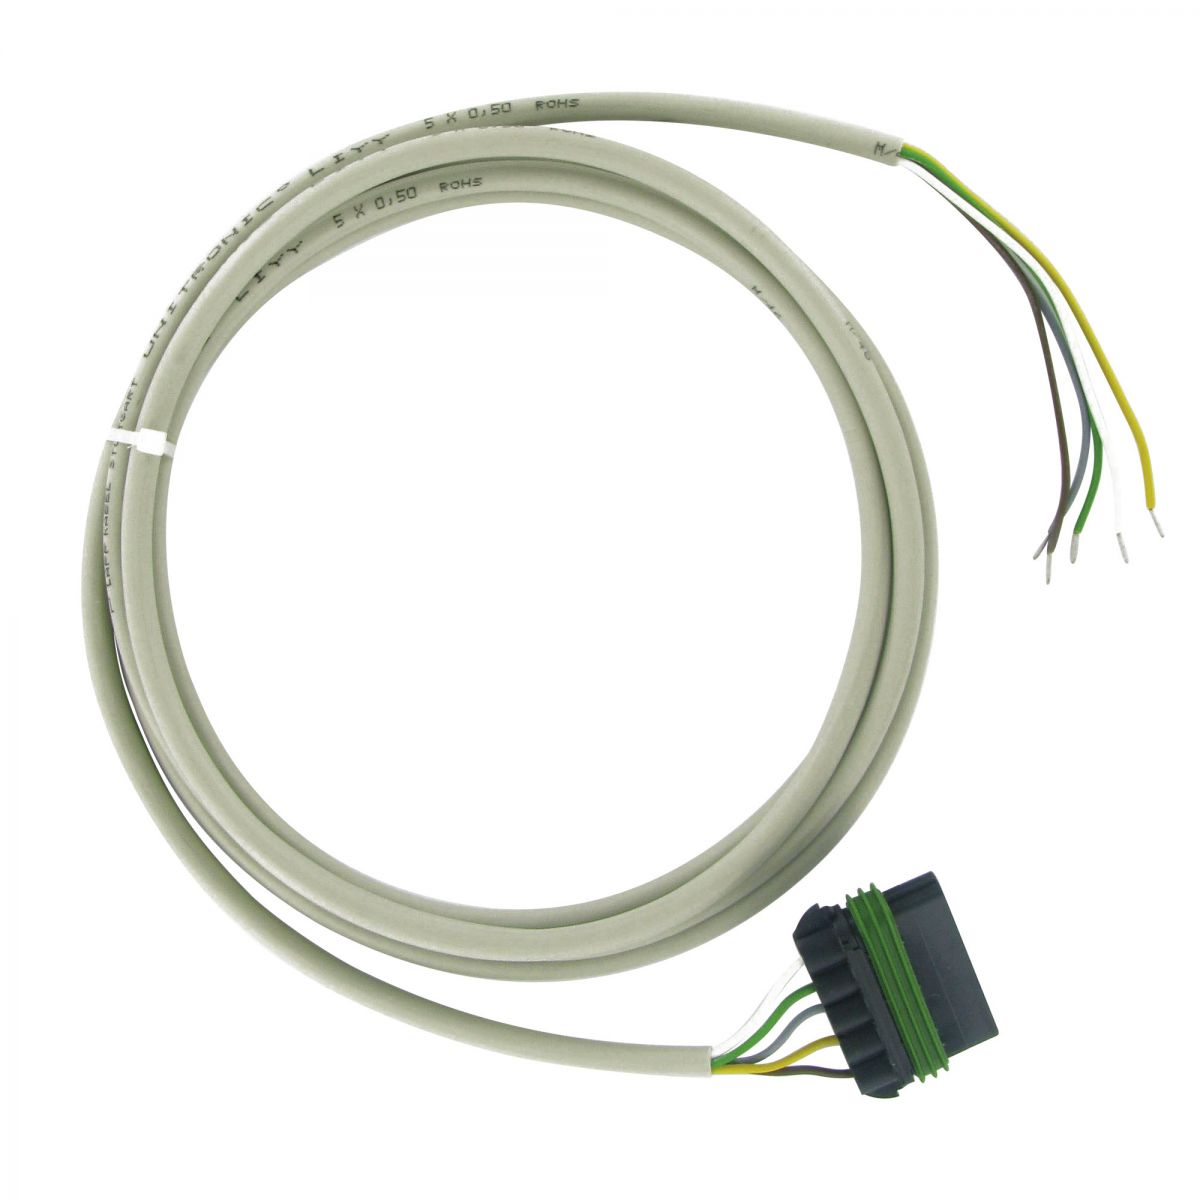 cable 25 m with plug for motor silver 001440000